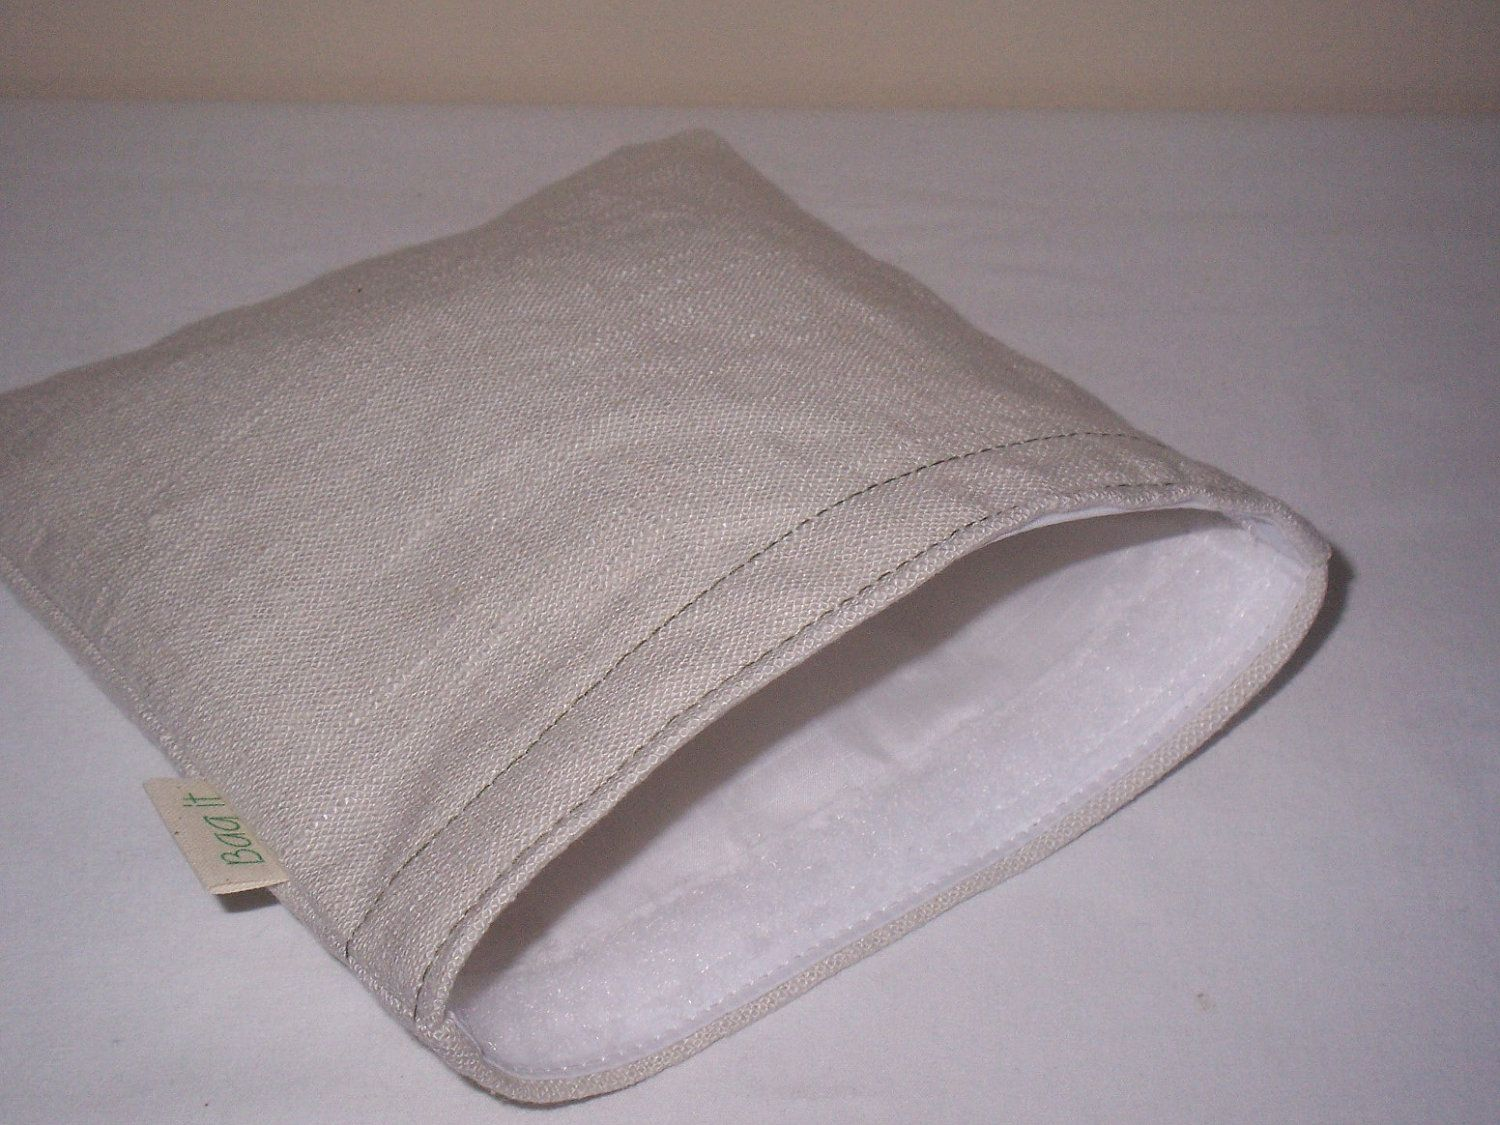 eco friendly plain and simple on natural unbleached cotton...